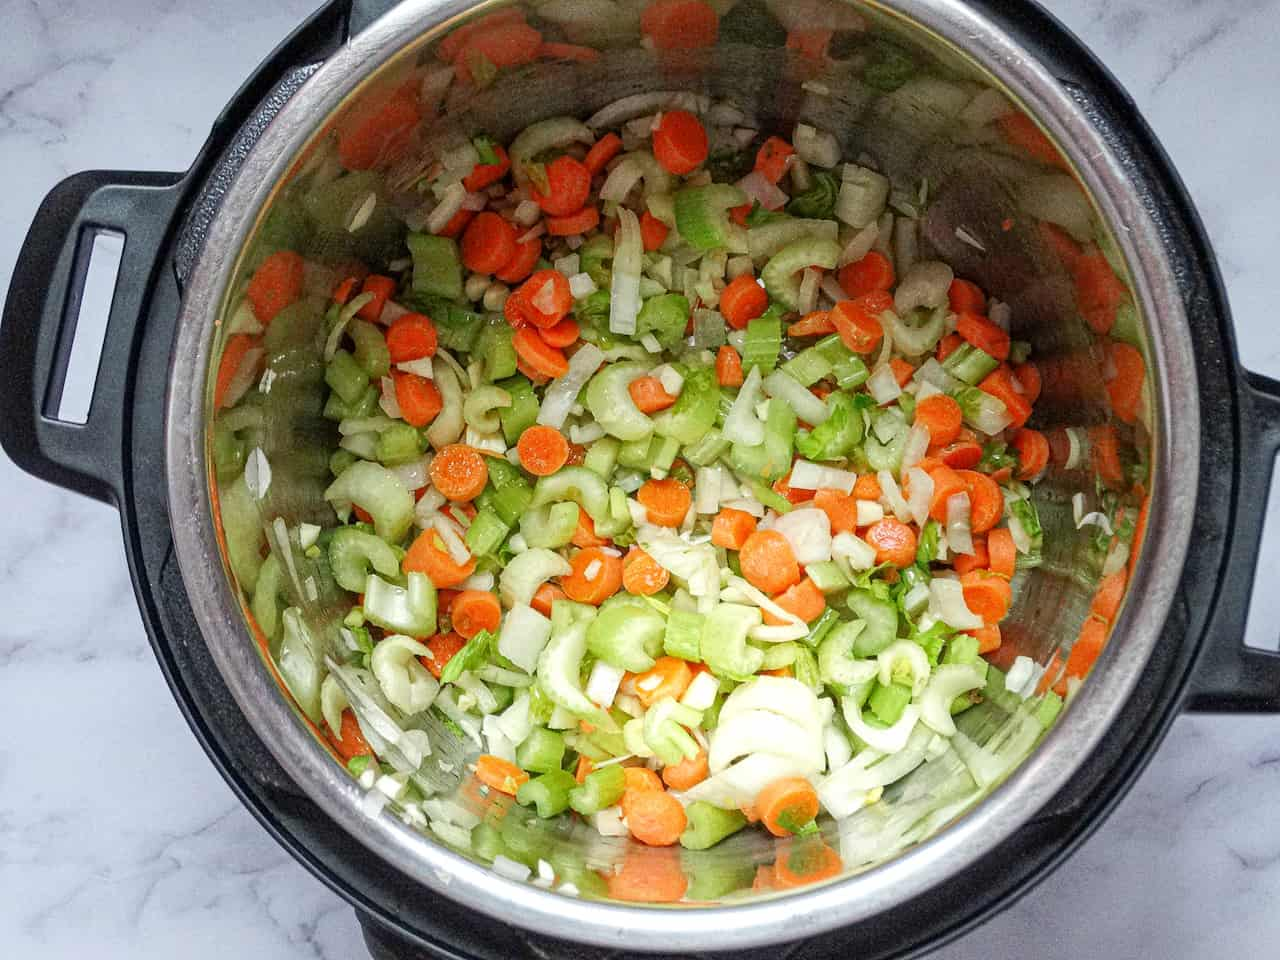 carrots, celery, onions, and garlic in an instant pot